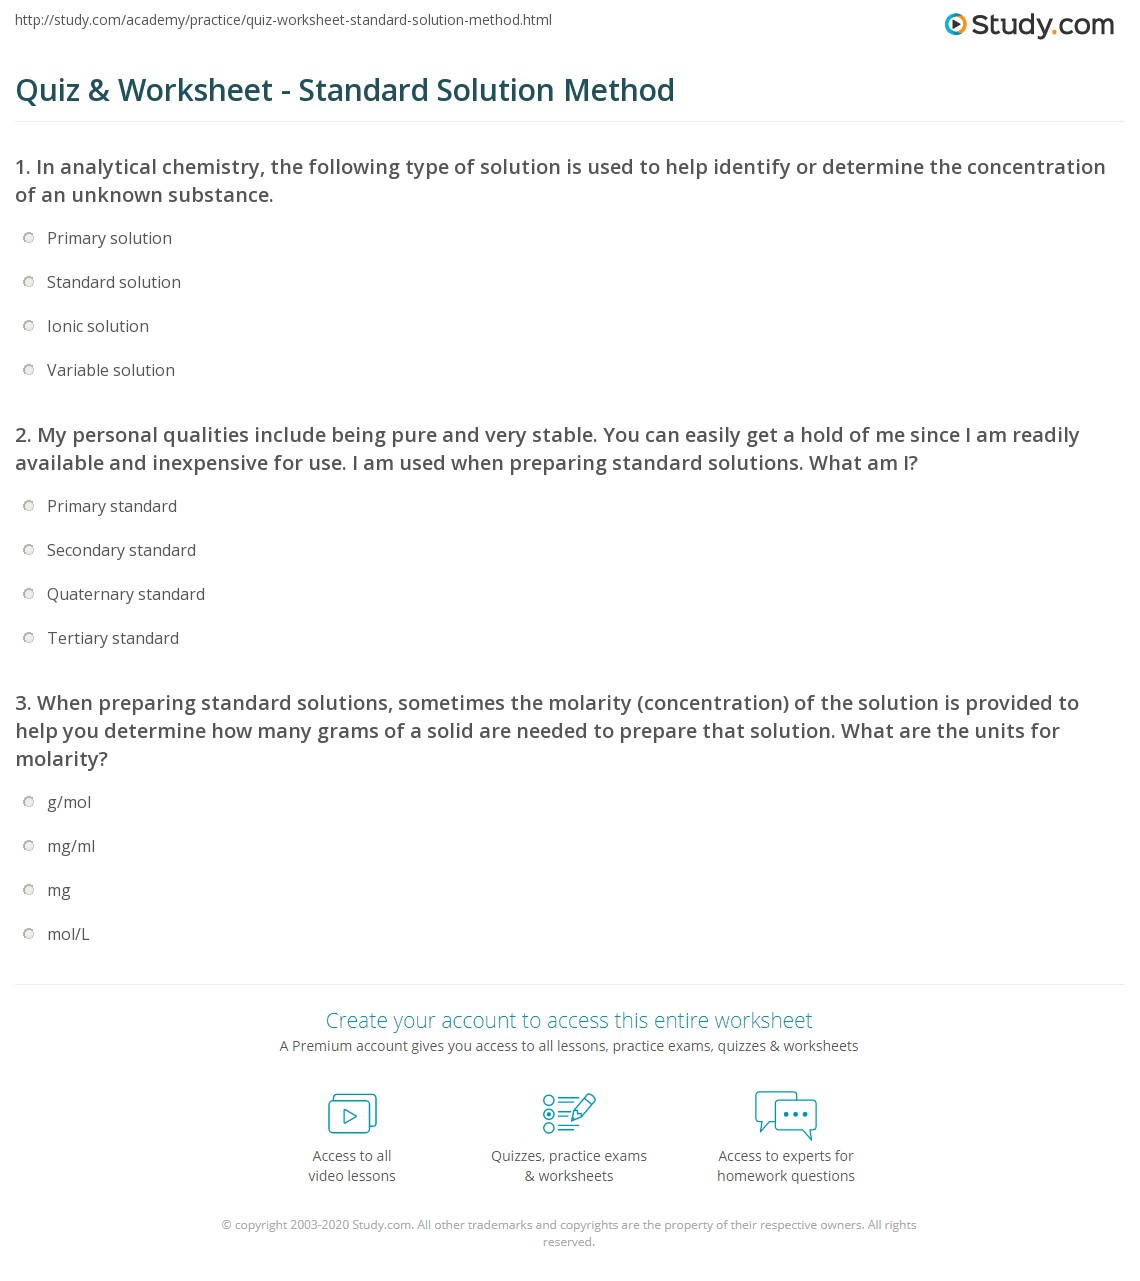 quiz worksheet standard solution method com 1 my personal qualities include being pure and very stable you can easily get a hold of me since i am readily available and inexpensive for use